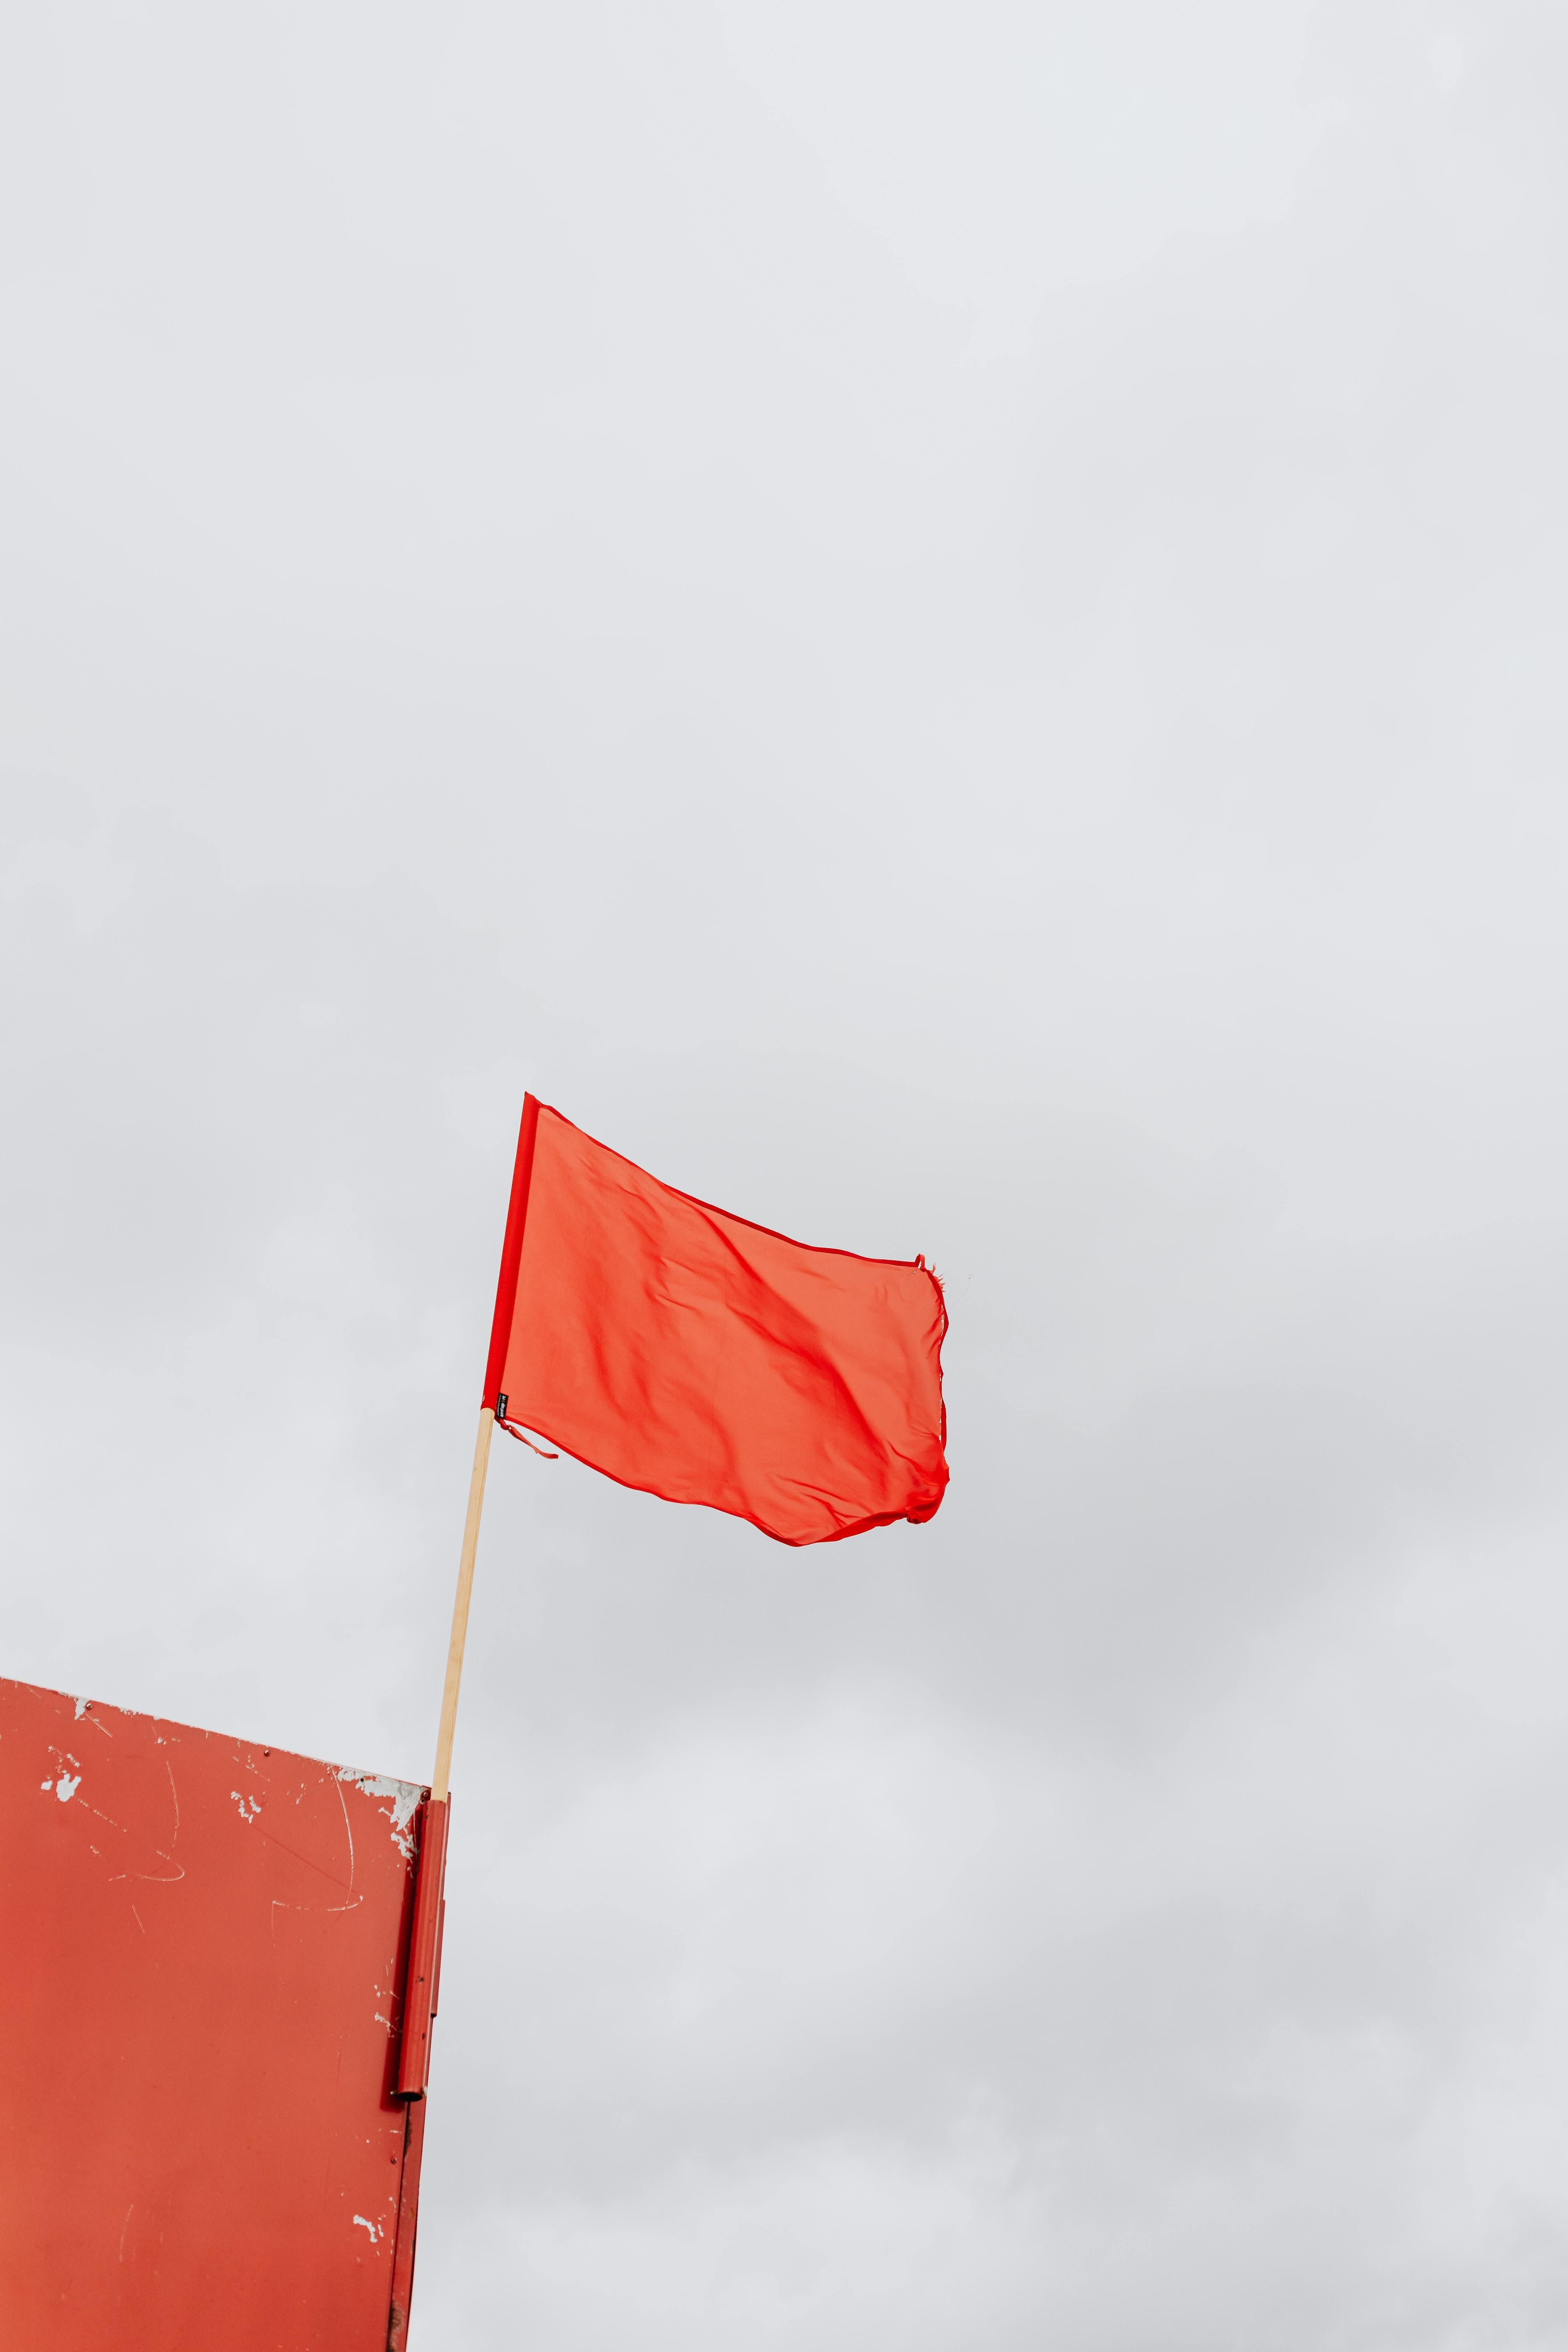 Red Flags in Dating Relationships